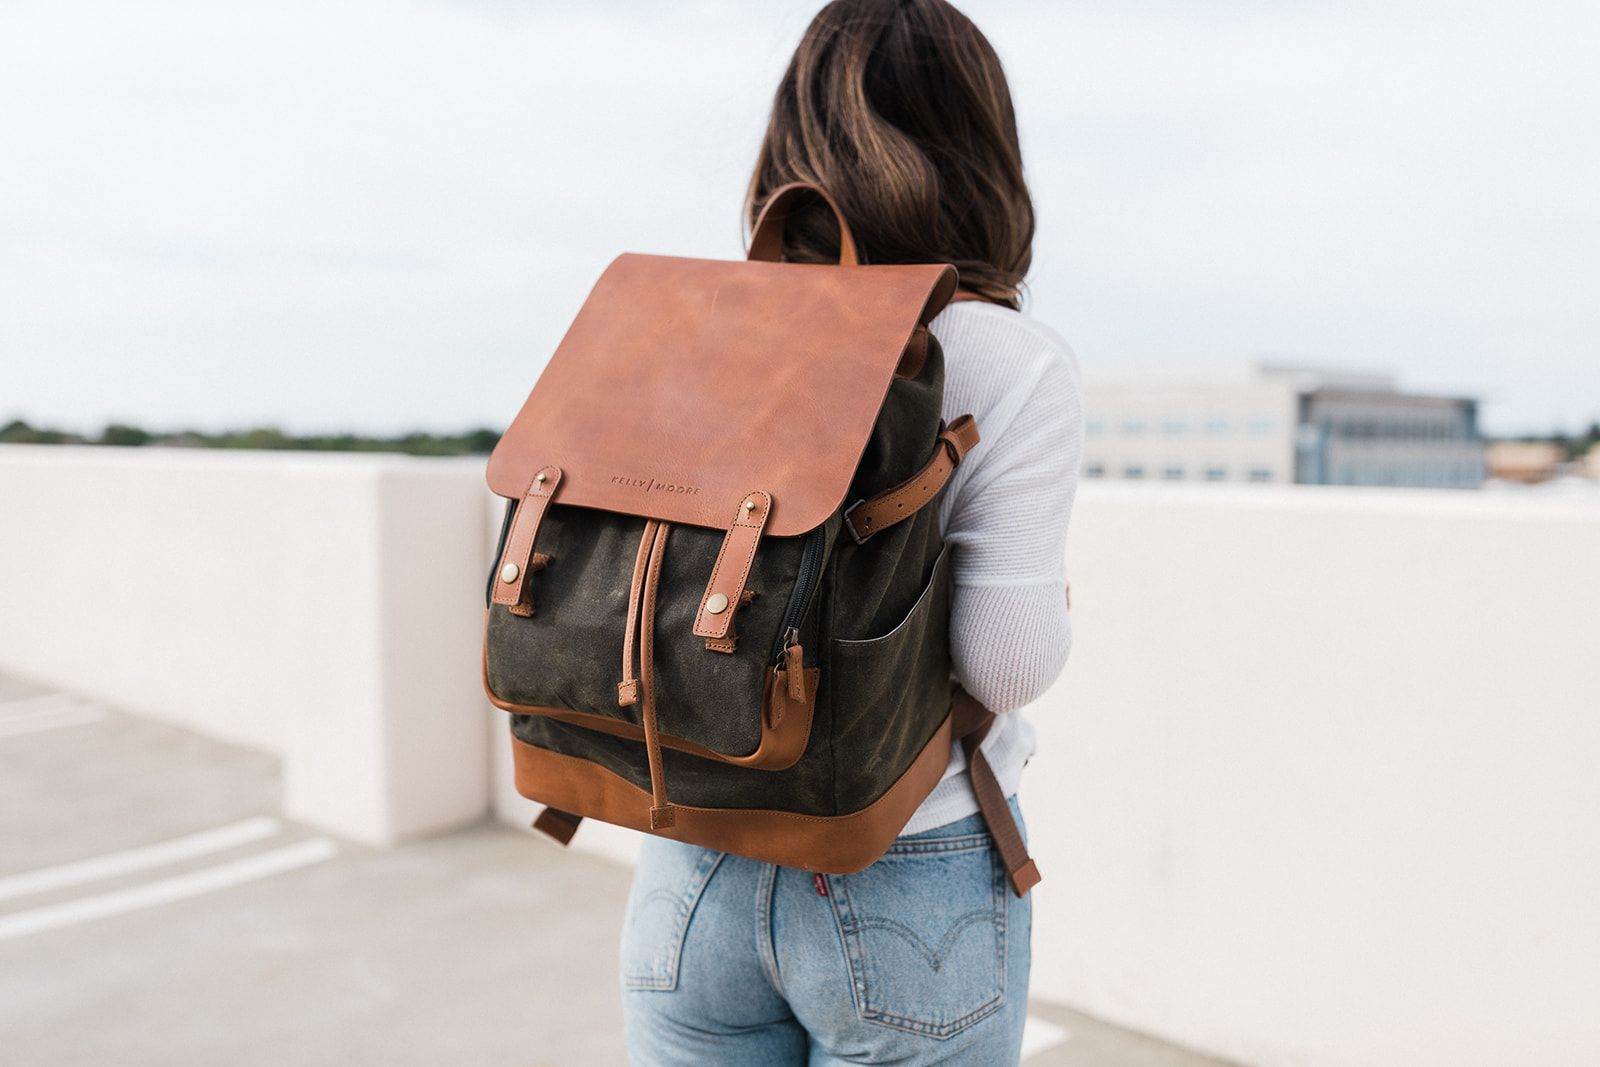 b53882fa7 The Pilot 2.0 - Canvas + Full Grain Leather Backpack | Men clothes | Kelly  moore bag, Bags, Backpacks